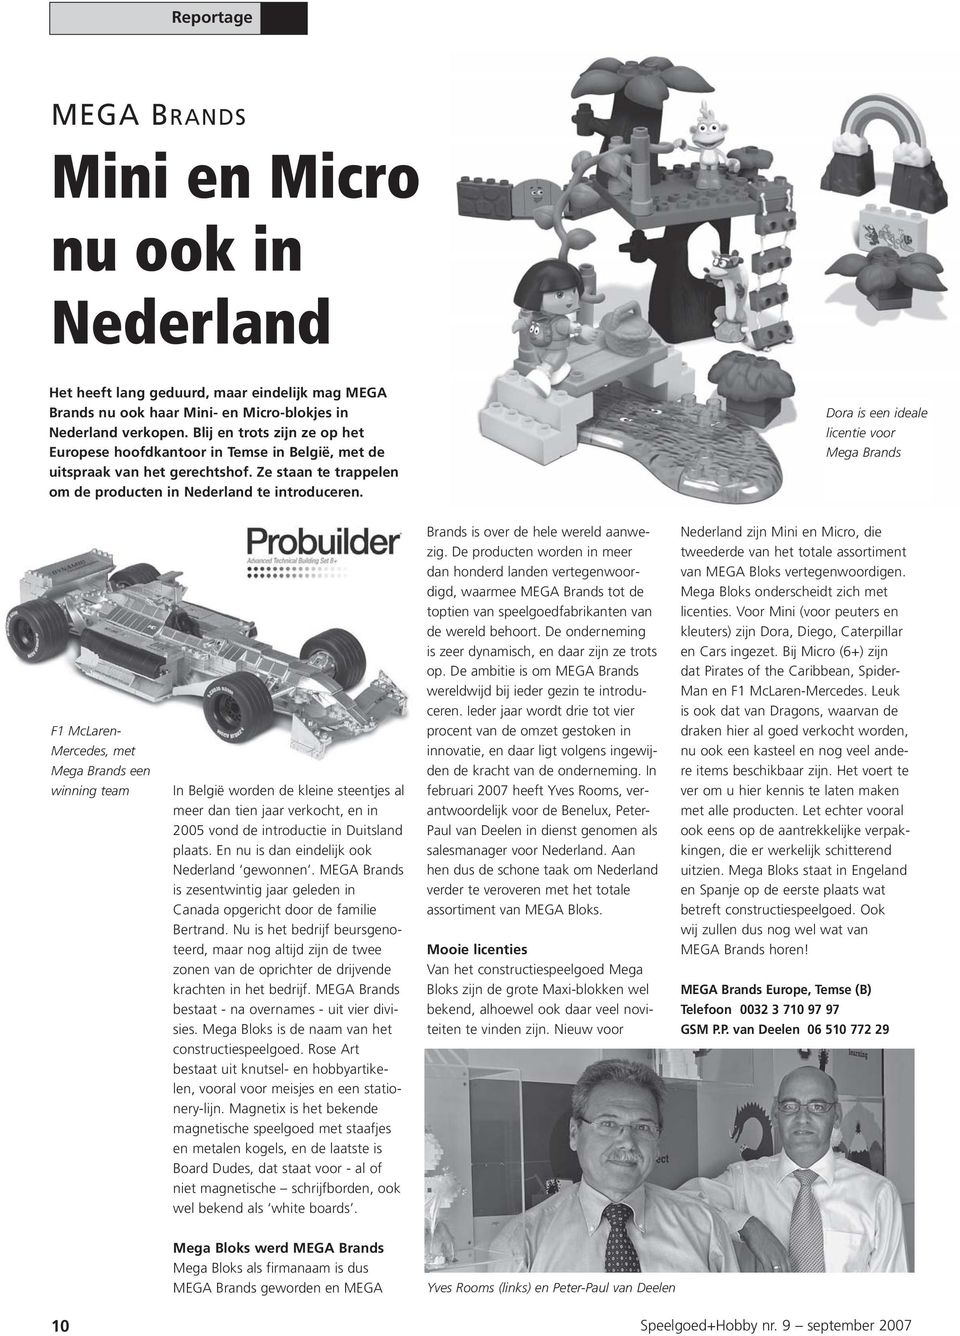 Dora is een ideale licentie voor Mega Brands F1 McLaren- Mercedes, met Mega Brands een winning team In België worden de kleine steentjes al meer dan tien jaar verkocht, en in 2005 vond de introductie